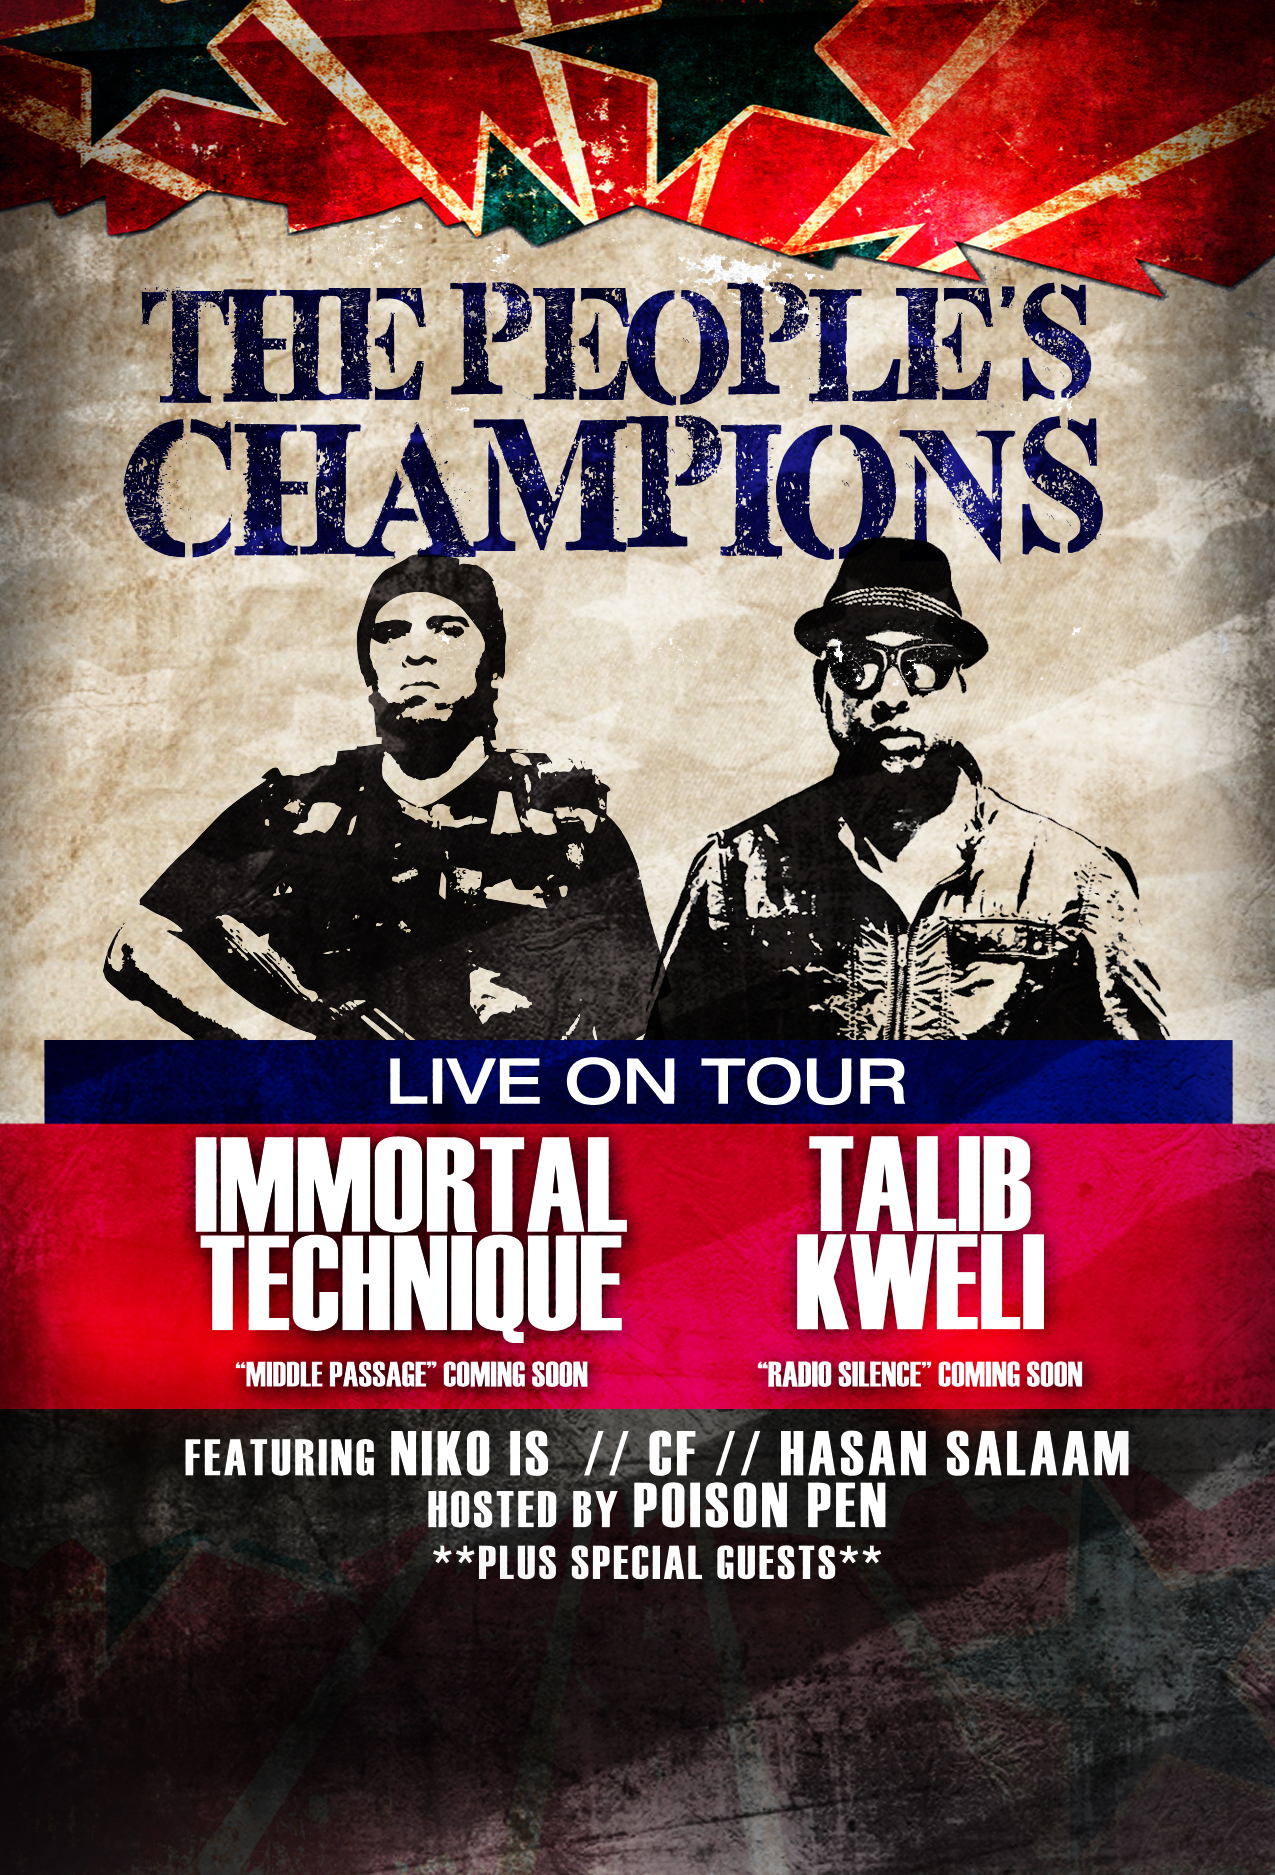 The People's Champions Tour